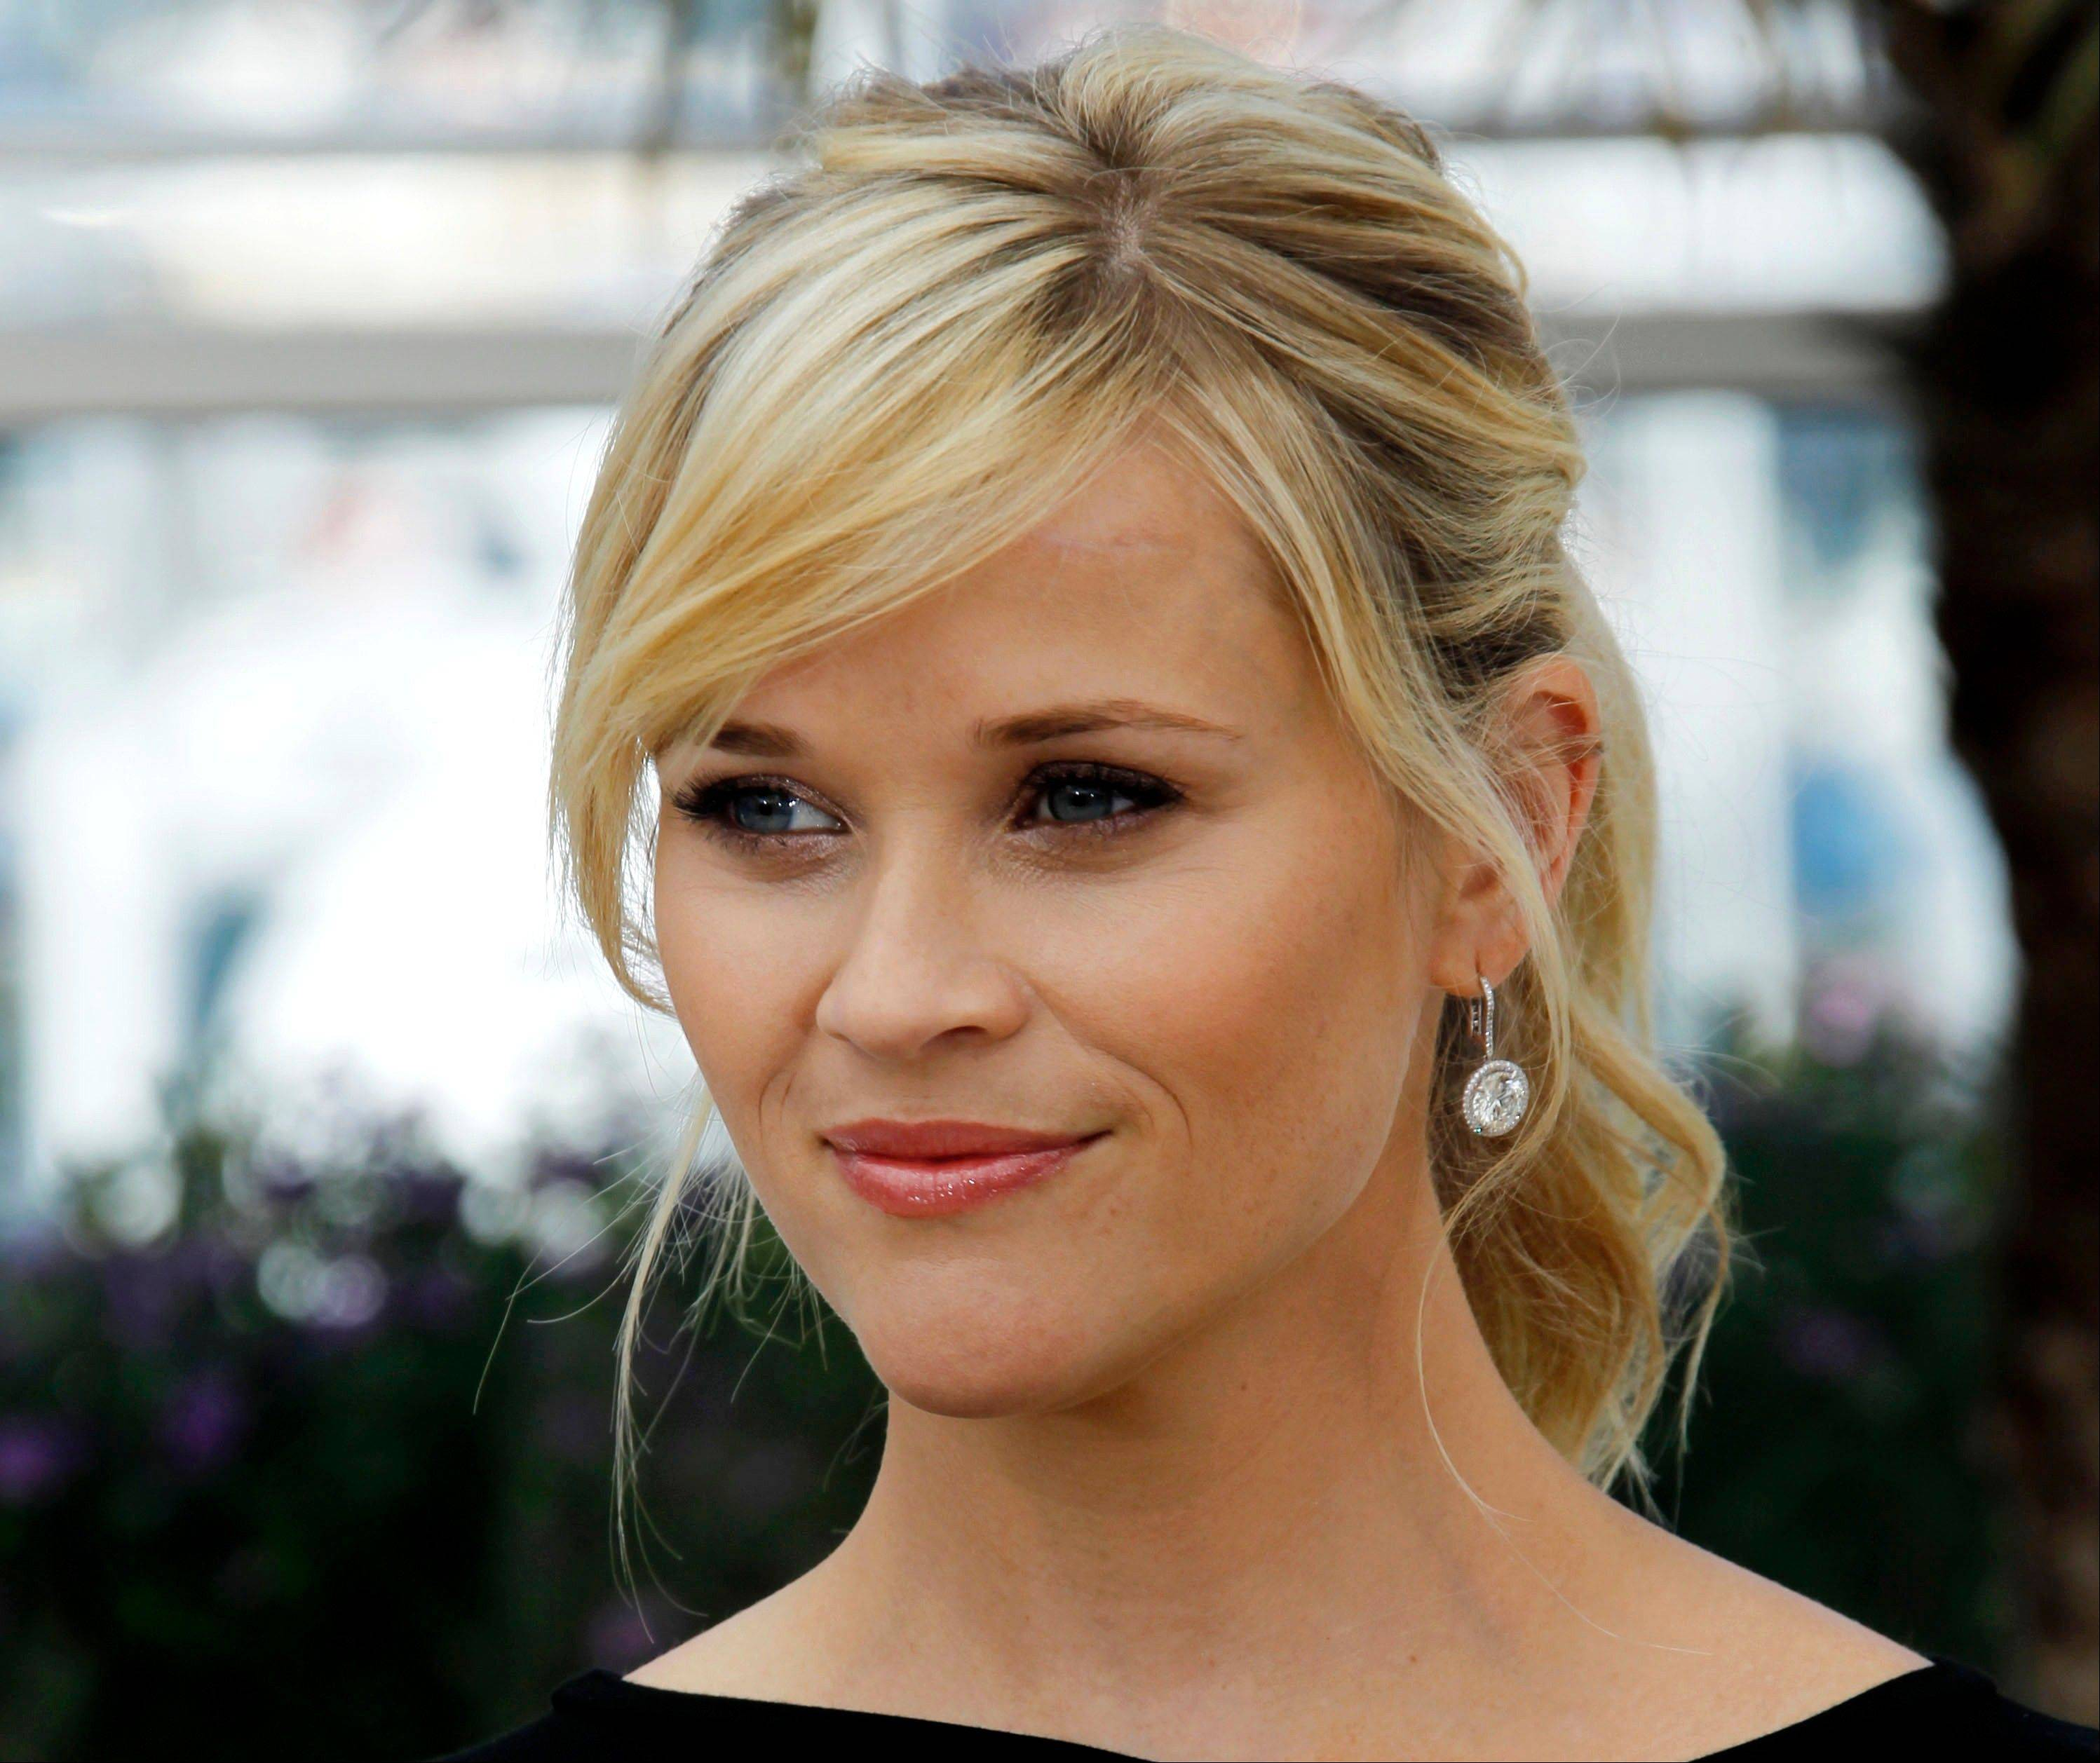 Actress Reese Witherspoon, Oscar winner and mother of three, will receive the March of Dimes Grace Kelly Award at its Celebration of Babies luncheon Friday.